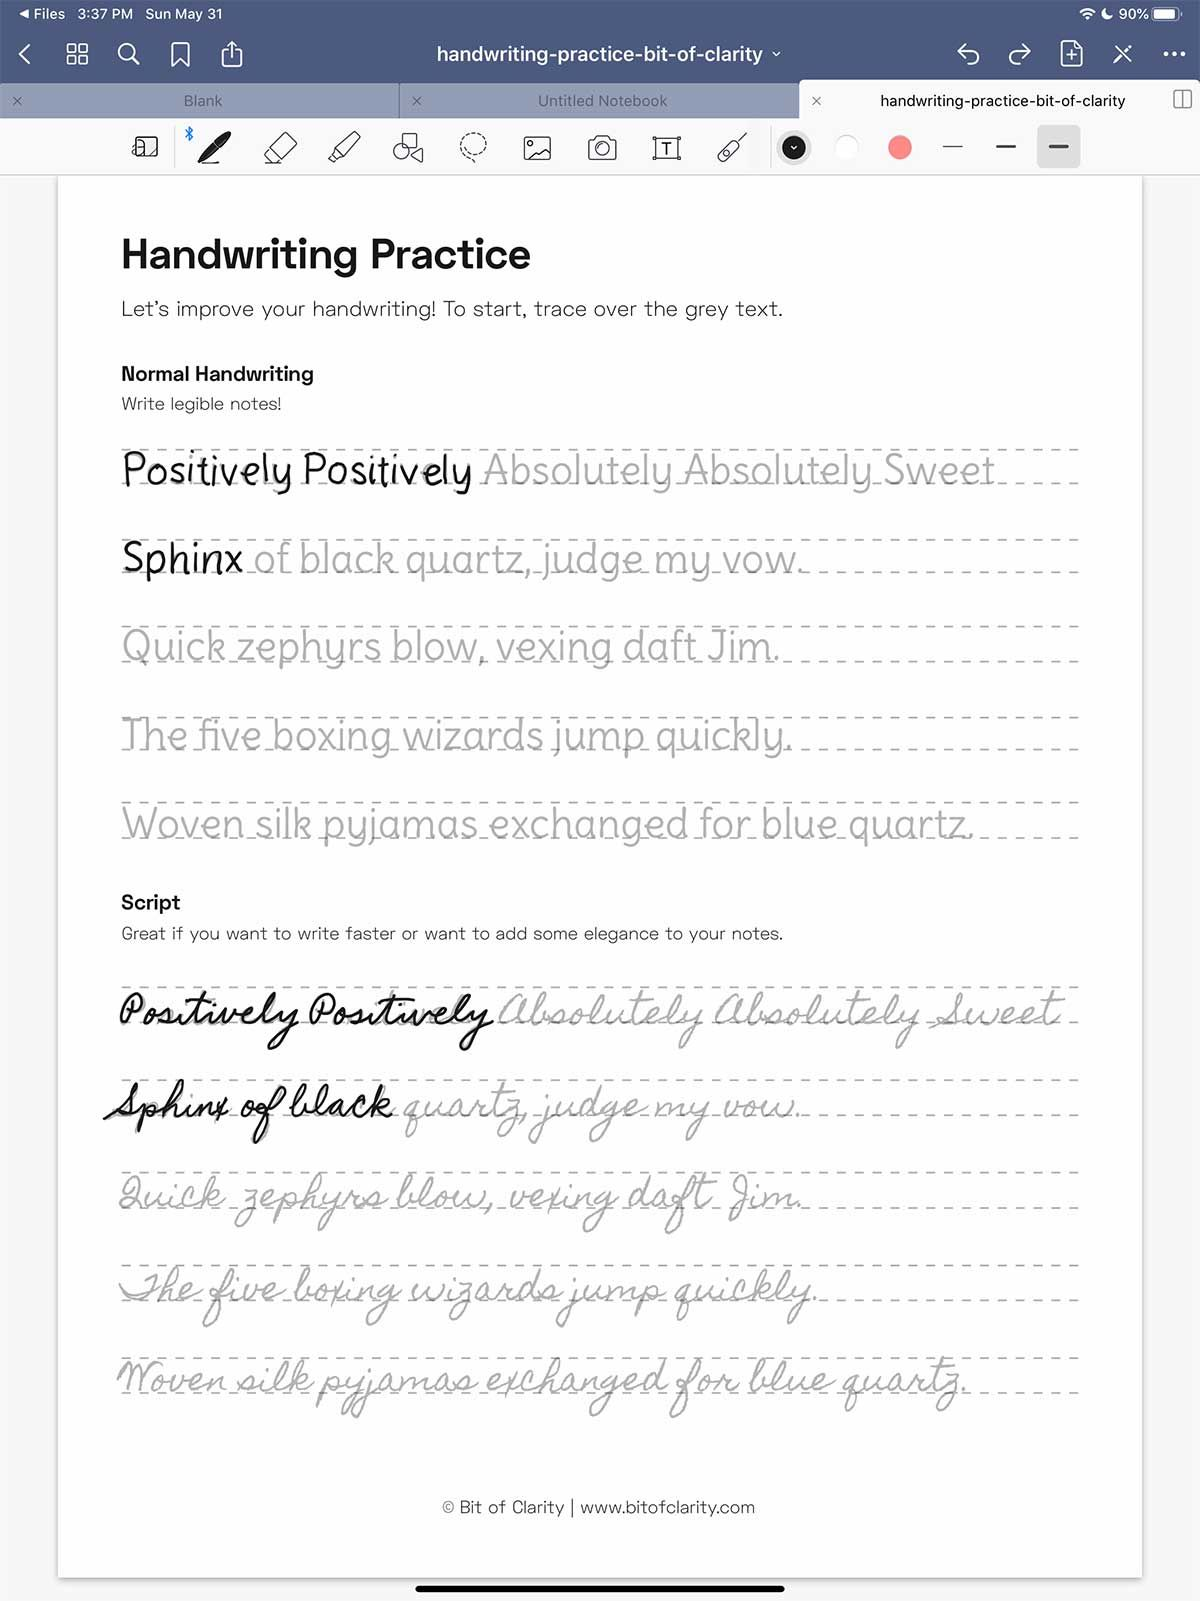 7 Easy Ways To Improve Your Handwriting On The Ipad Bit Of Clarity Improve Your Handwriting Handwriting Practice Sheets Handwriting Practice Handwriting practice sheets pdf ipad